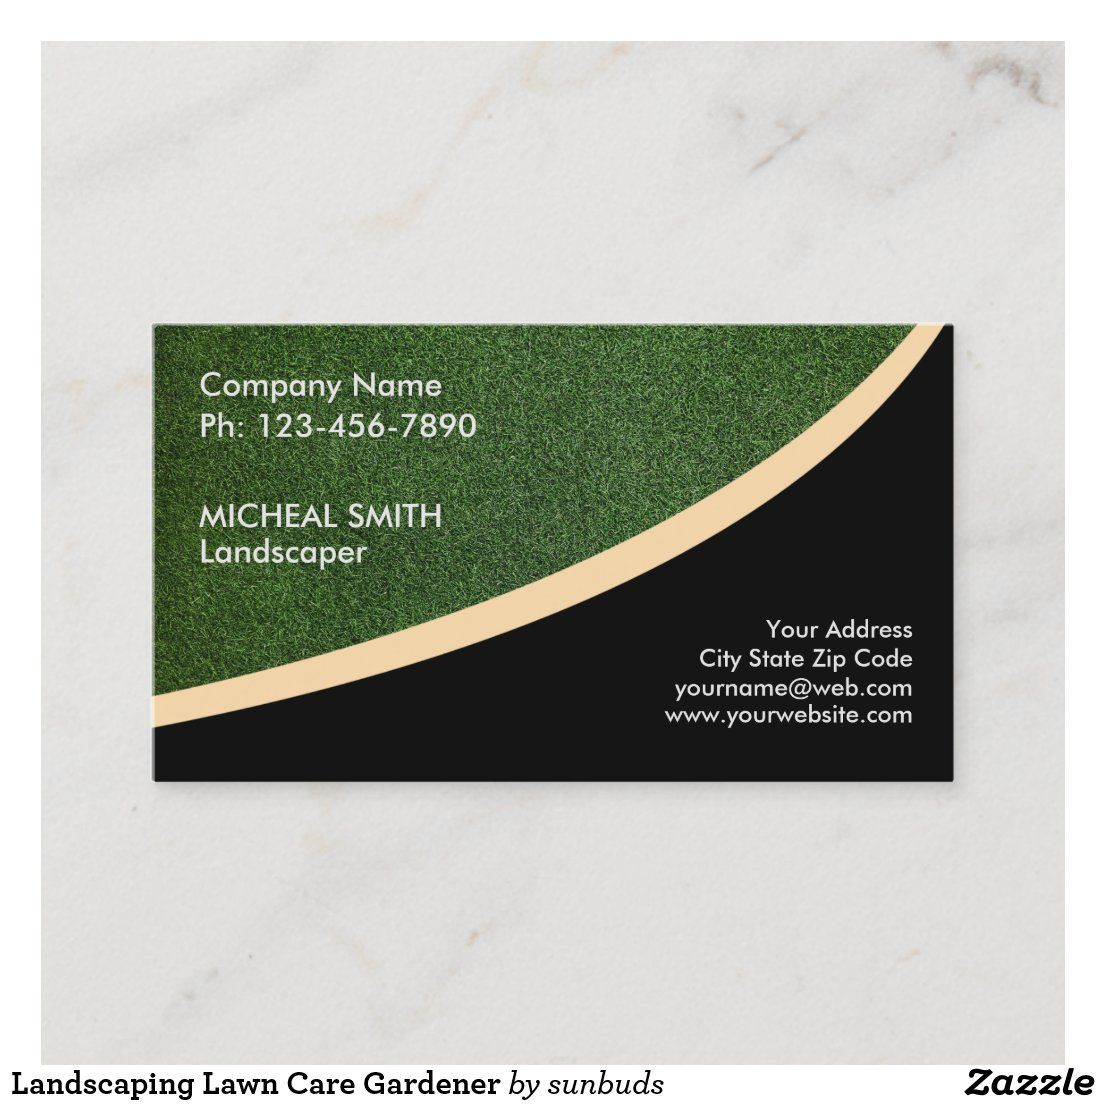 Landscaping Lawn Care Gardener Business Card Zazzle Com In 2021 Lawn Care Business Cards Lawn Care Landscaping Business Cards